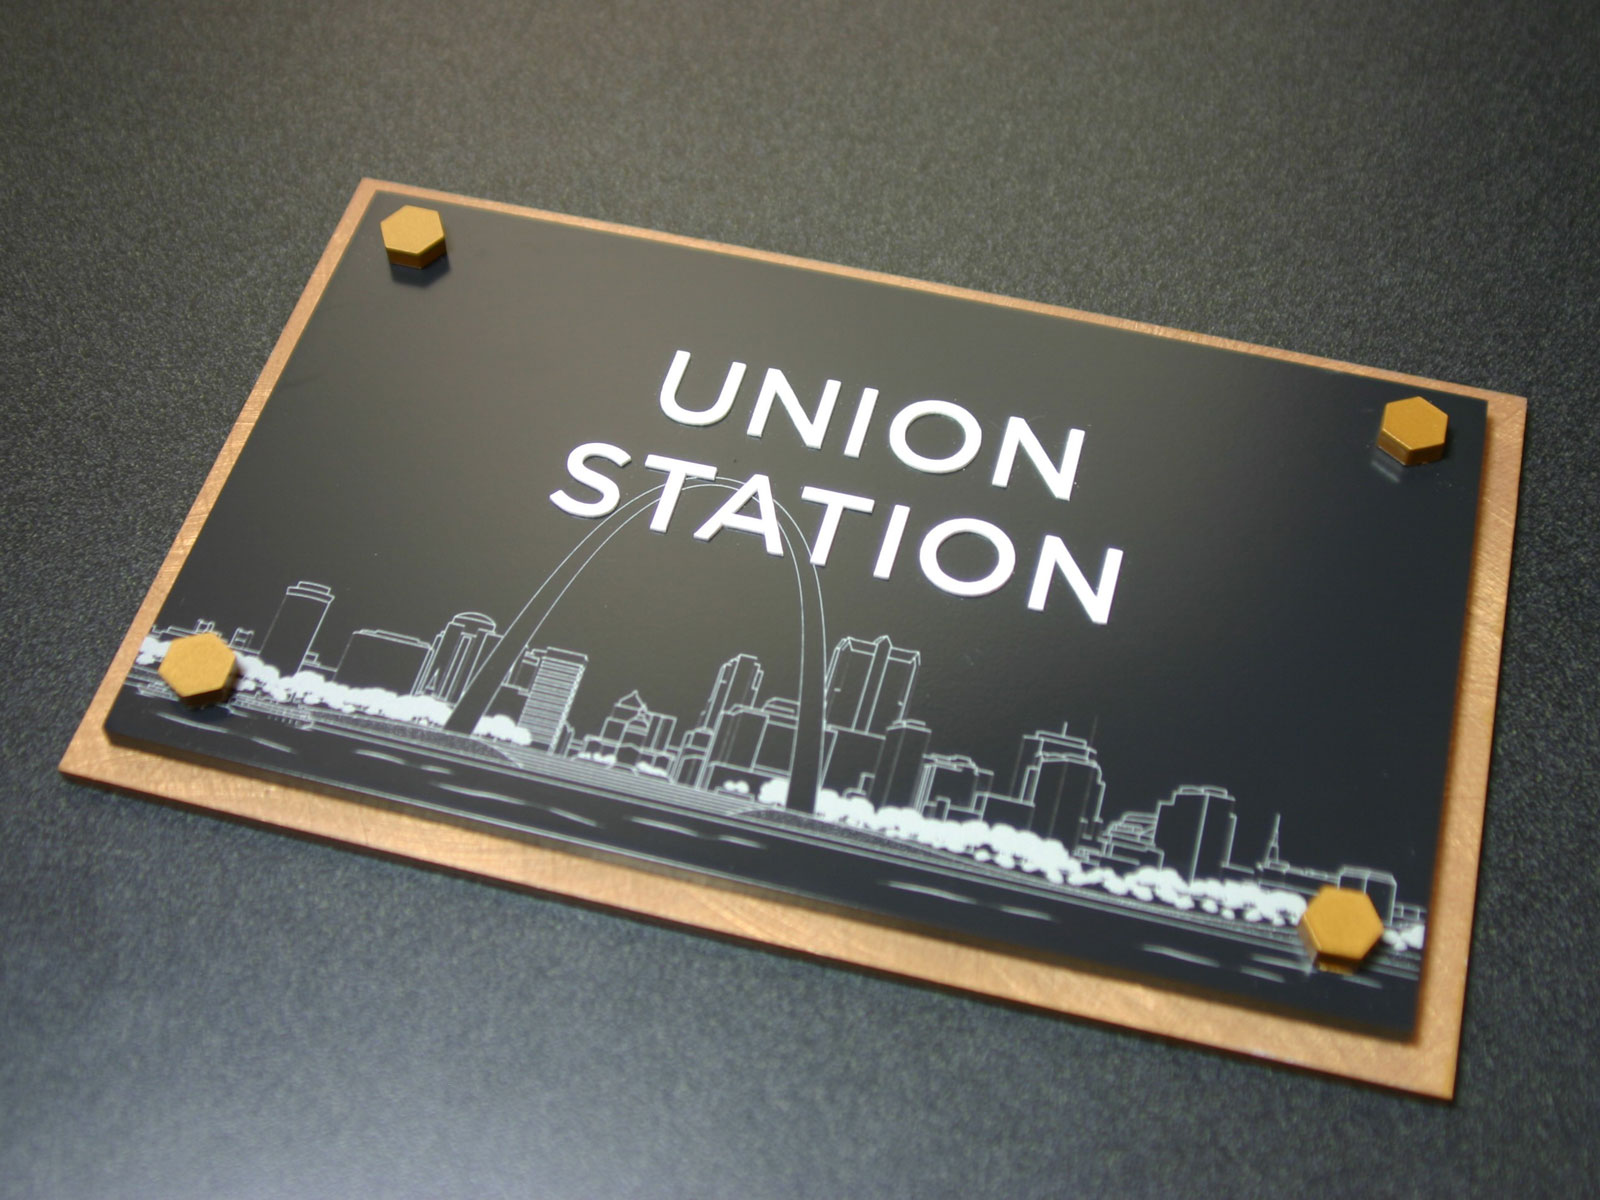 """.125"""" thick acrylic faceplate with surface applied finish paint, digitally printed graphics and raised text. Laser cut and surface painted decorative hex heads. Backplate is Chemetal bronze laminate material applied to .125"""" thick acrylic with painted edges."""